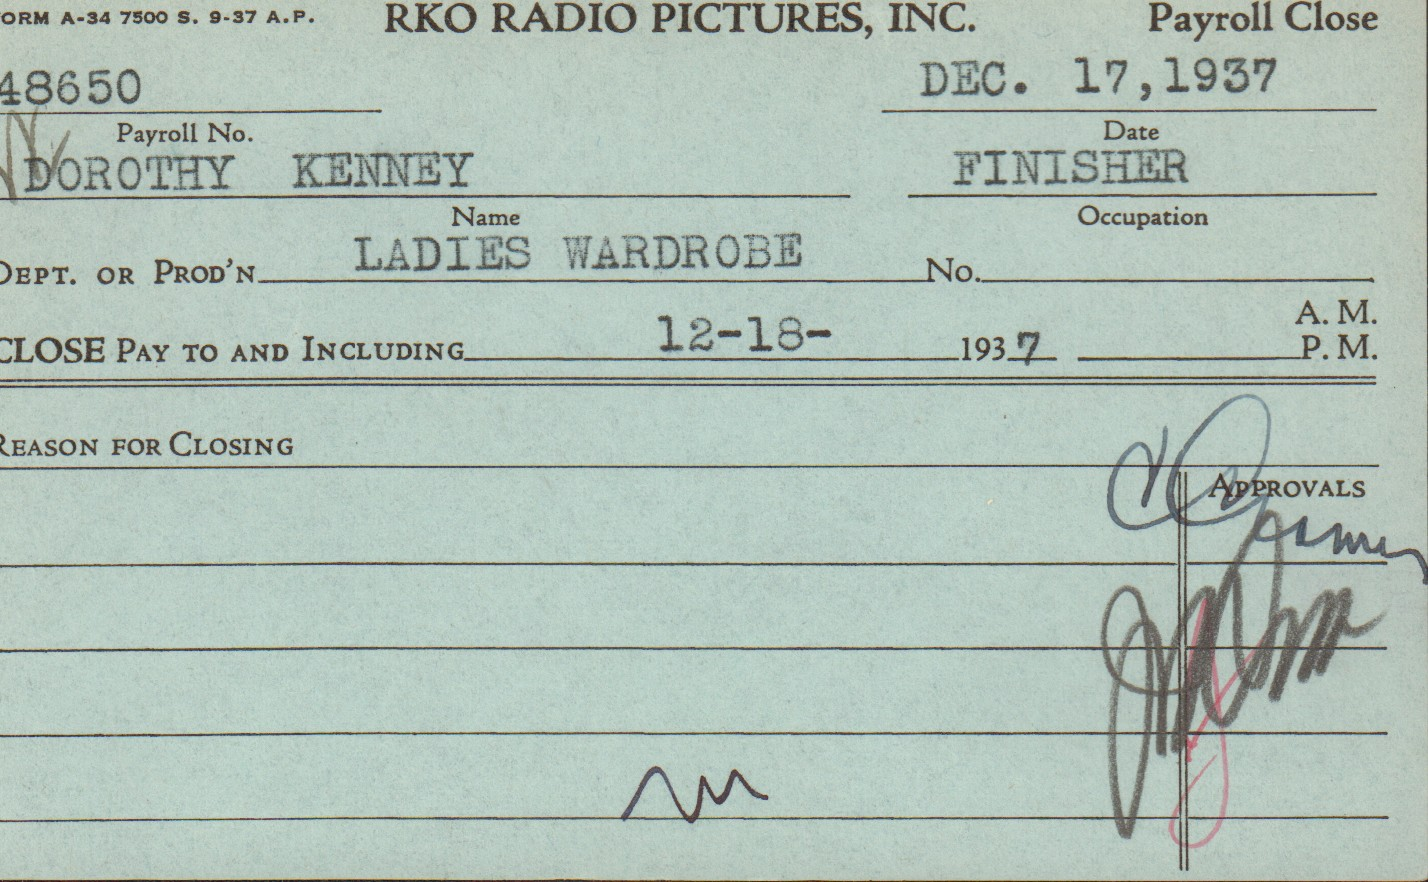 Dorothy Kenney payroll card